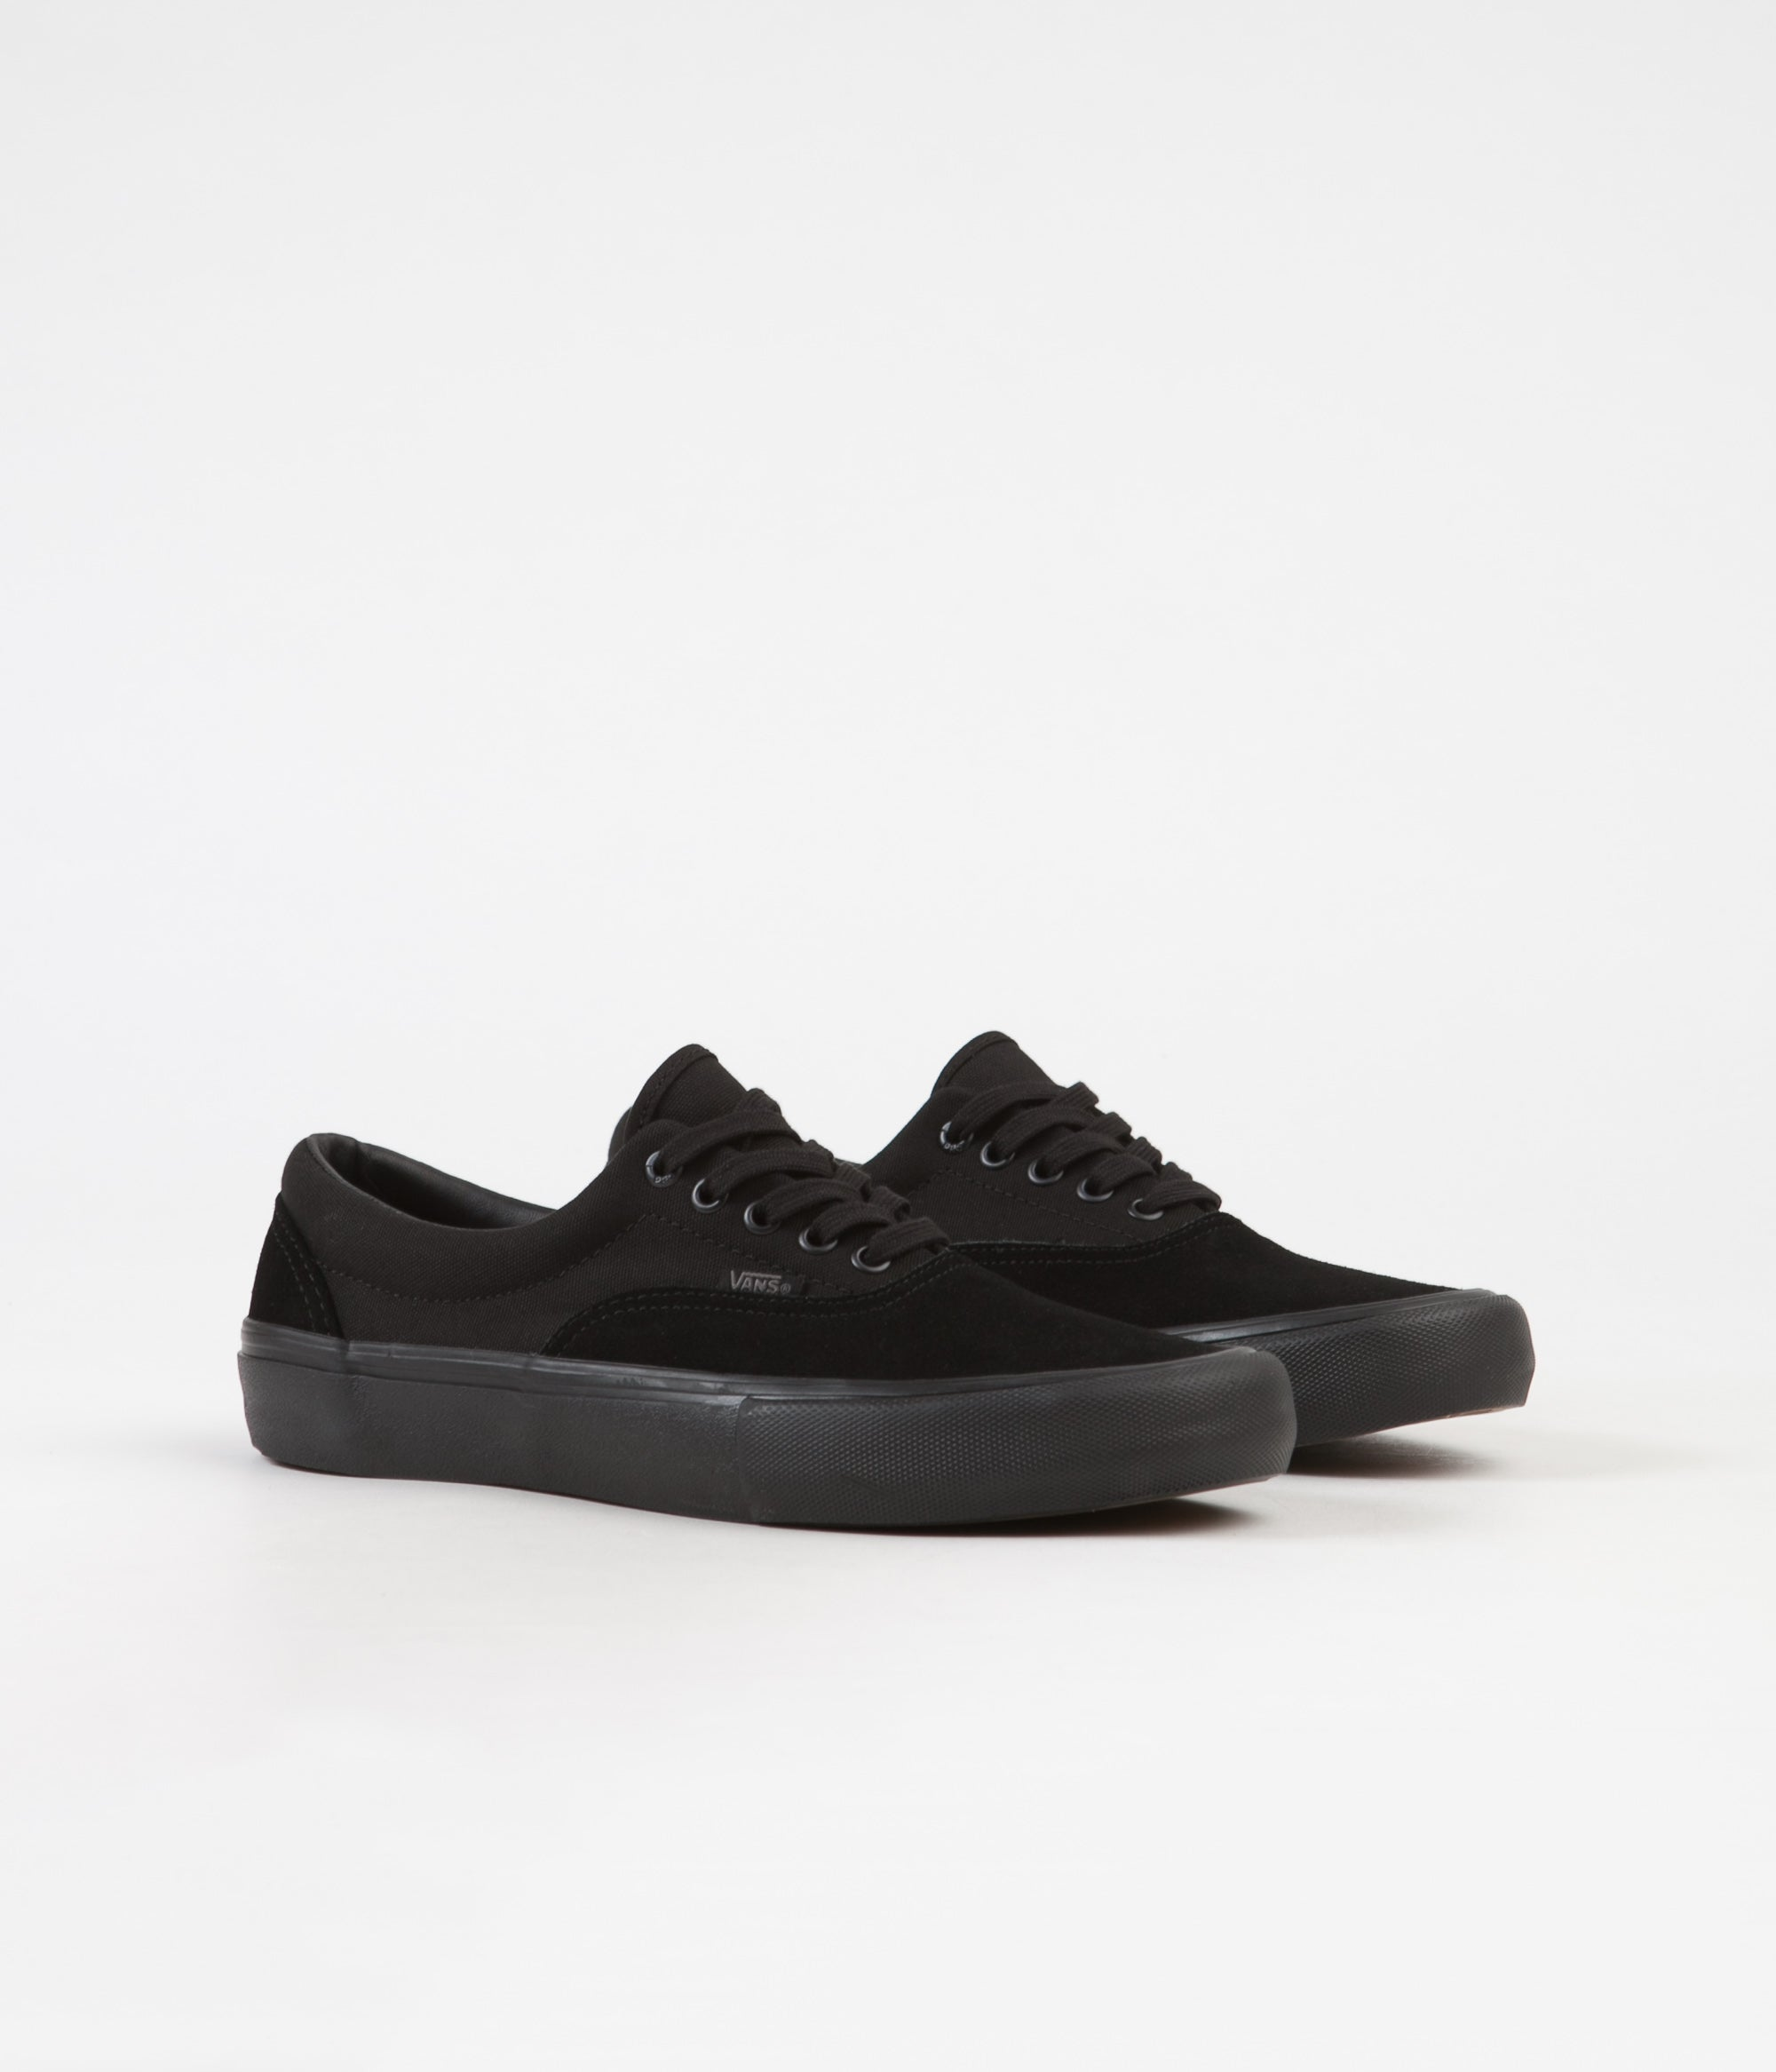 Vans Era Pro Shoes - Blackout